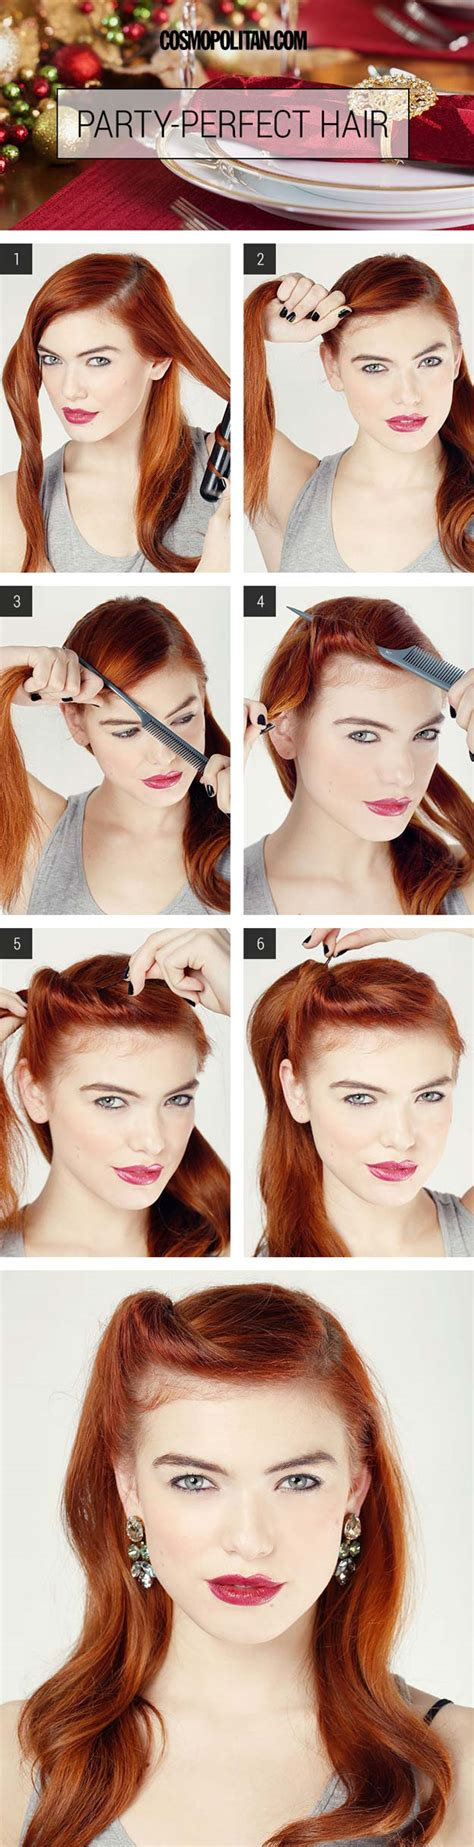 diy hairstyles com 41 diy cool easy hairstyles that real people can actually